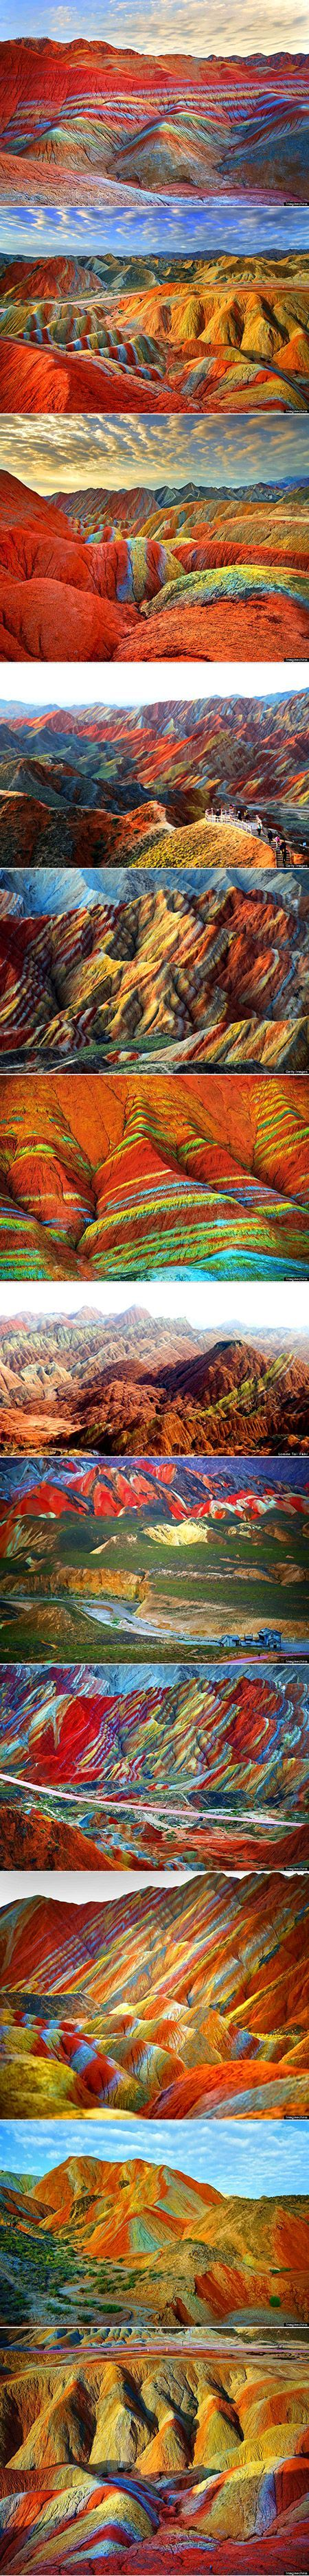 In the northwestern Gansu province of China lies the Zhangye Danxia Landform Geological Park, a gorgeous expanse of land known for its rainbow-colored rock formations. Bands of fiery red, creamy orange, rich green, and bright yellow streak across the mountains, forming the most beautiful geological layer cake we have ever seen. http://www.wfpcc.com/waterfrontpropertieslistings.php